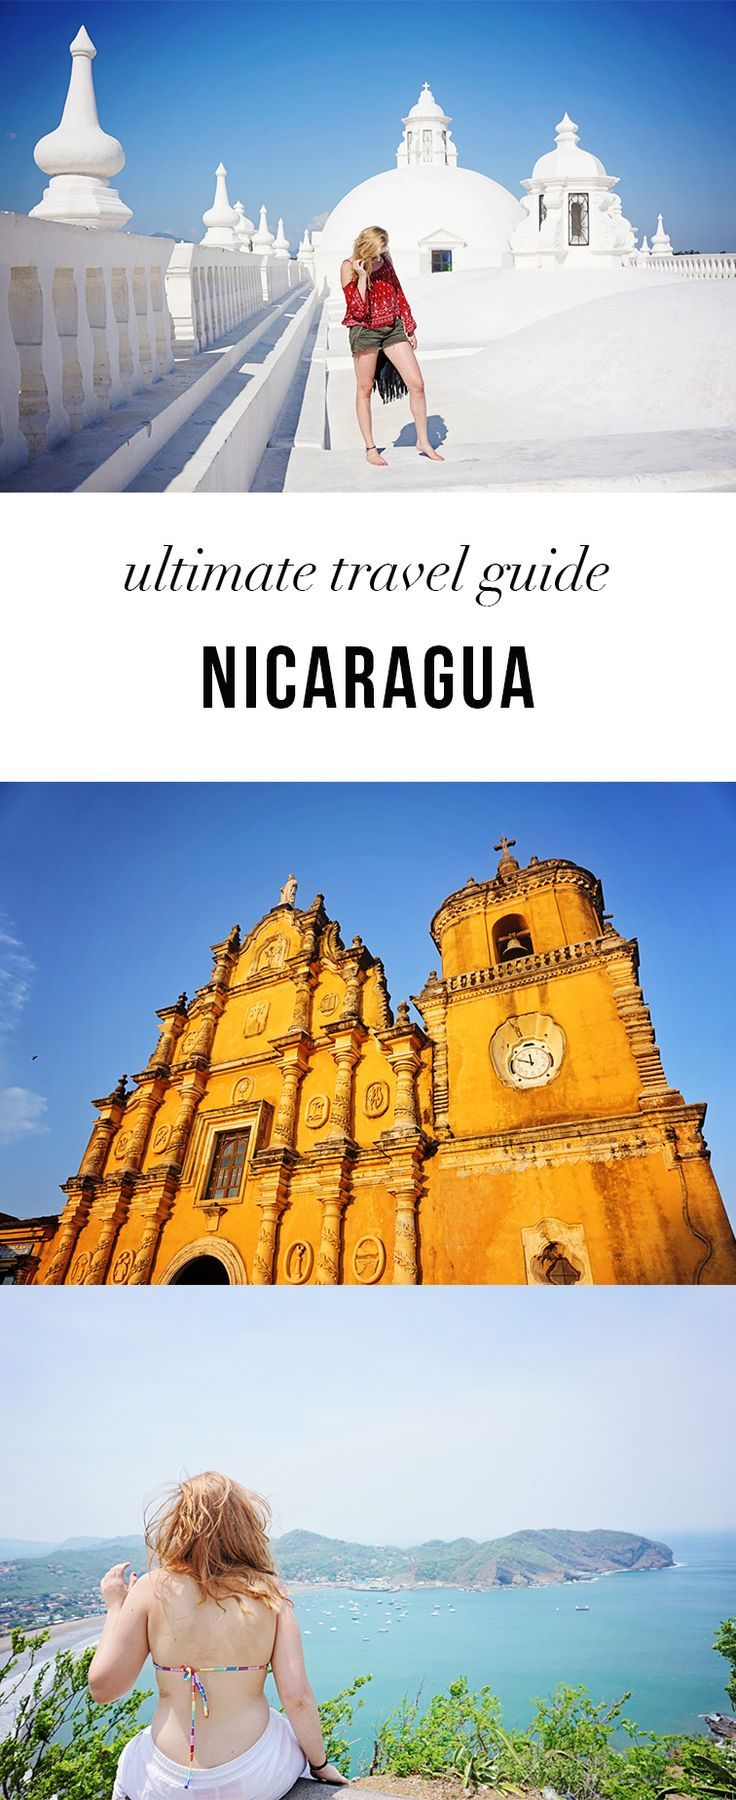 The Ultimate Travel Guide to Nicaragua. All the best things to do in Nicaragua which cities to visit.